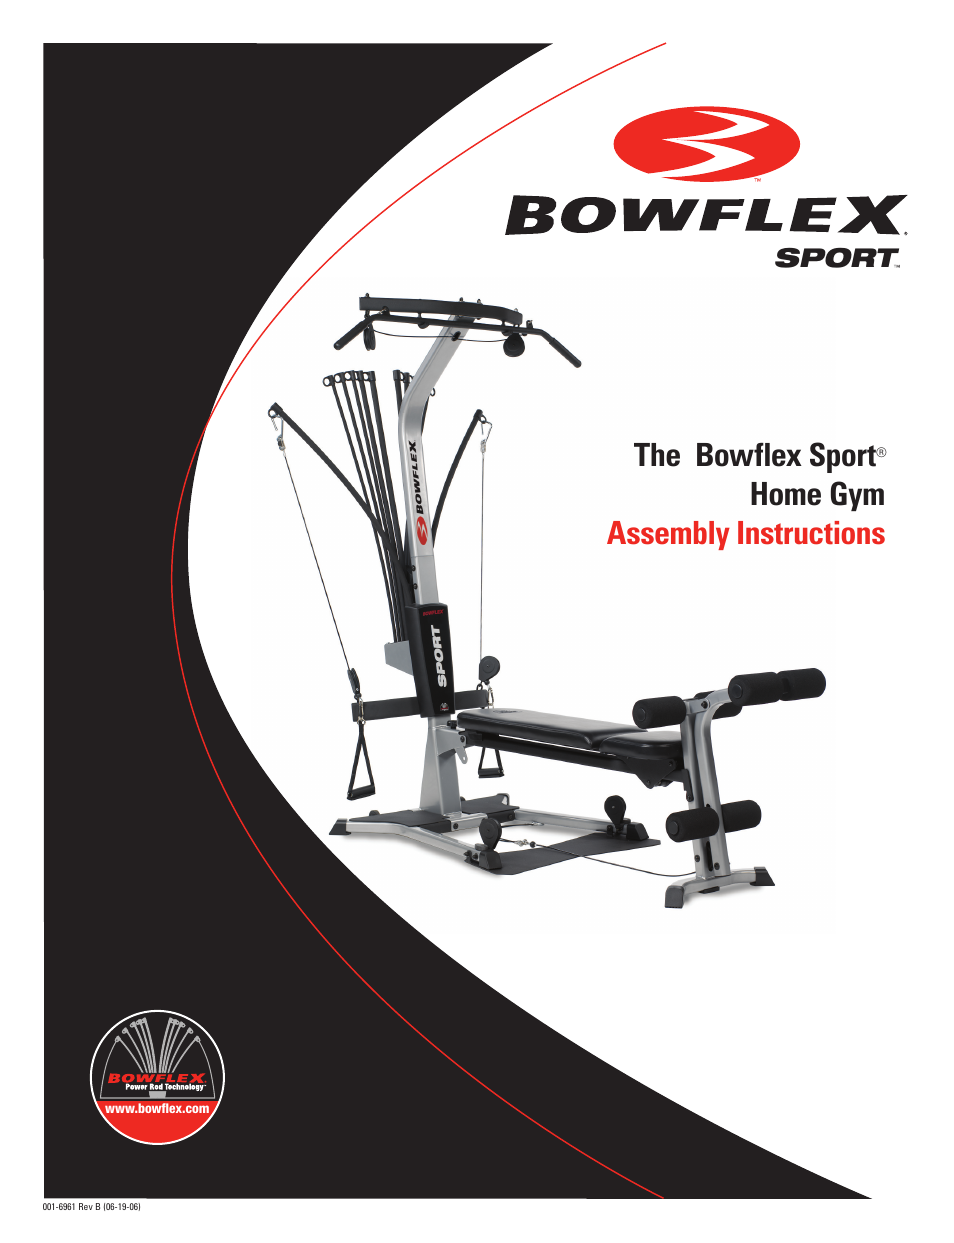 Bowflex Sport Home Gym User Manual